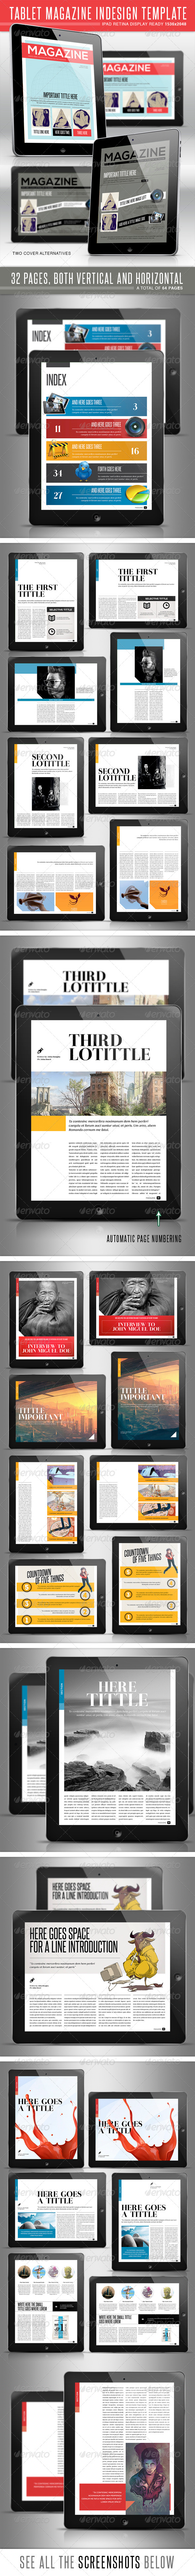 GraphicRiver Tablet MGZ Template 4682187